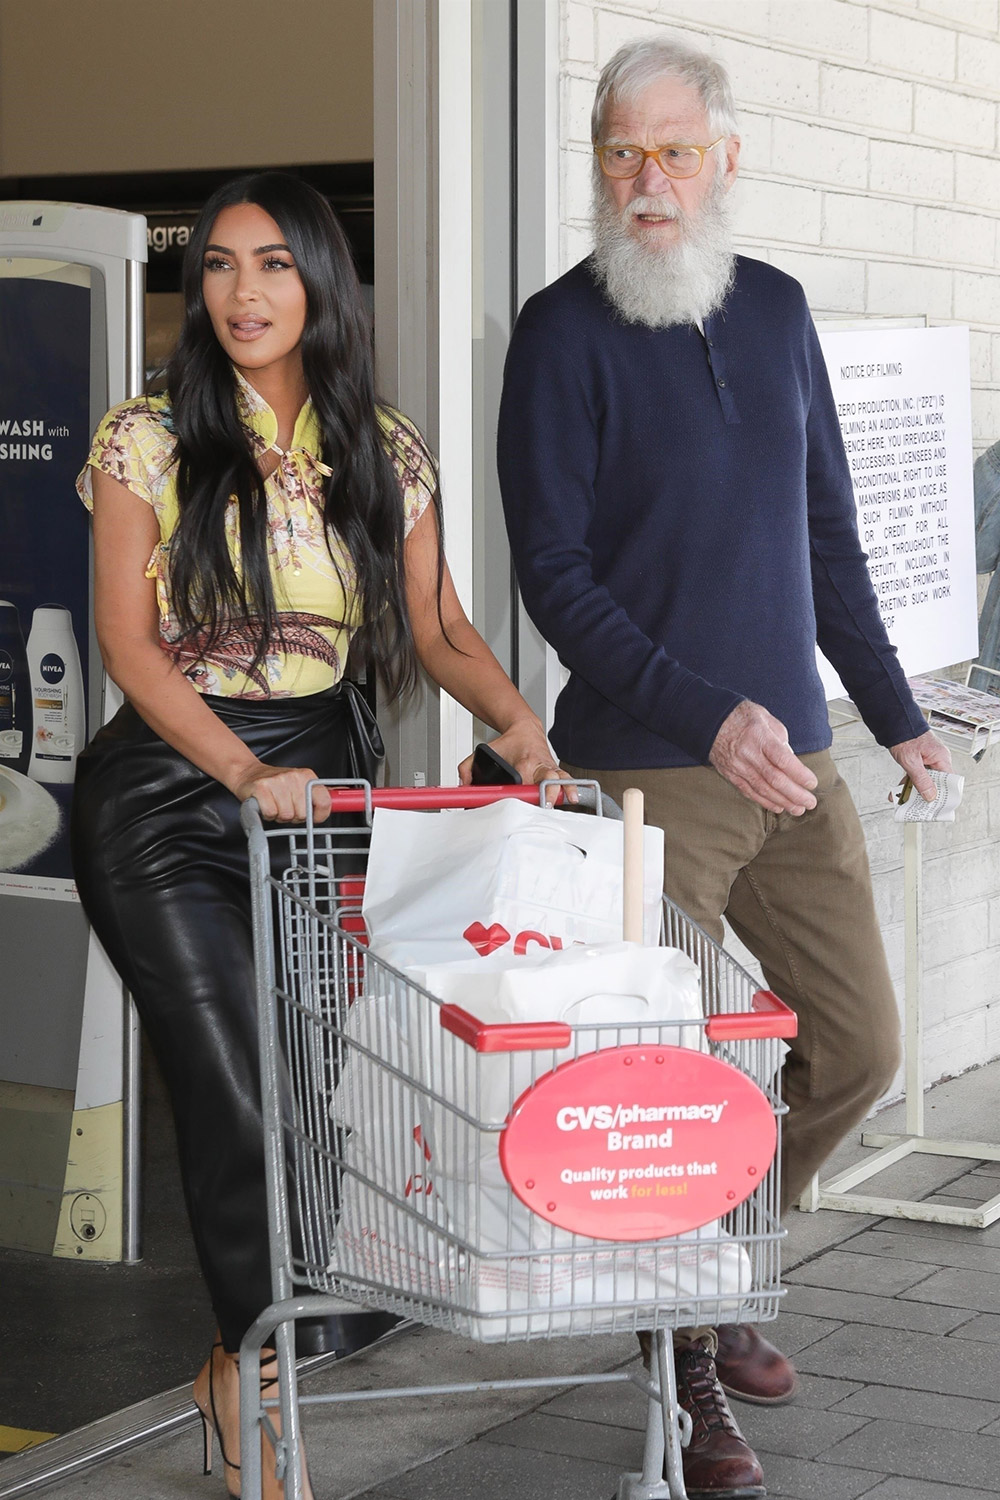 Kim Kardashian and David Letterman